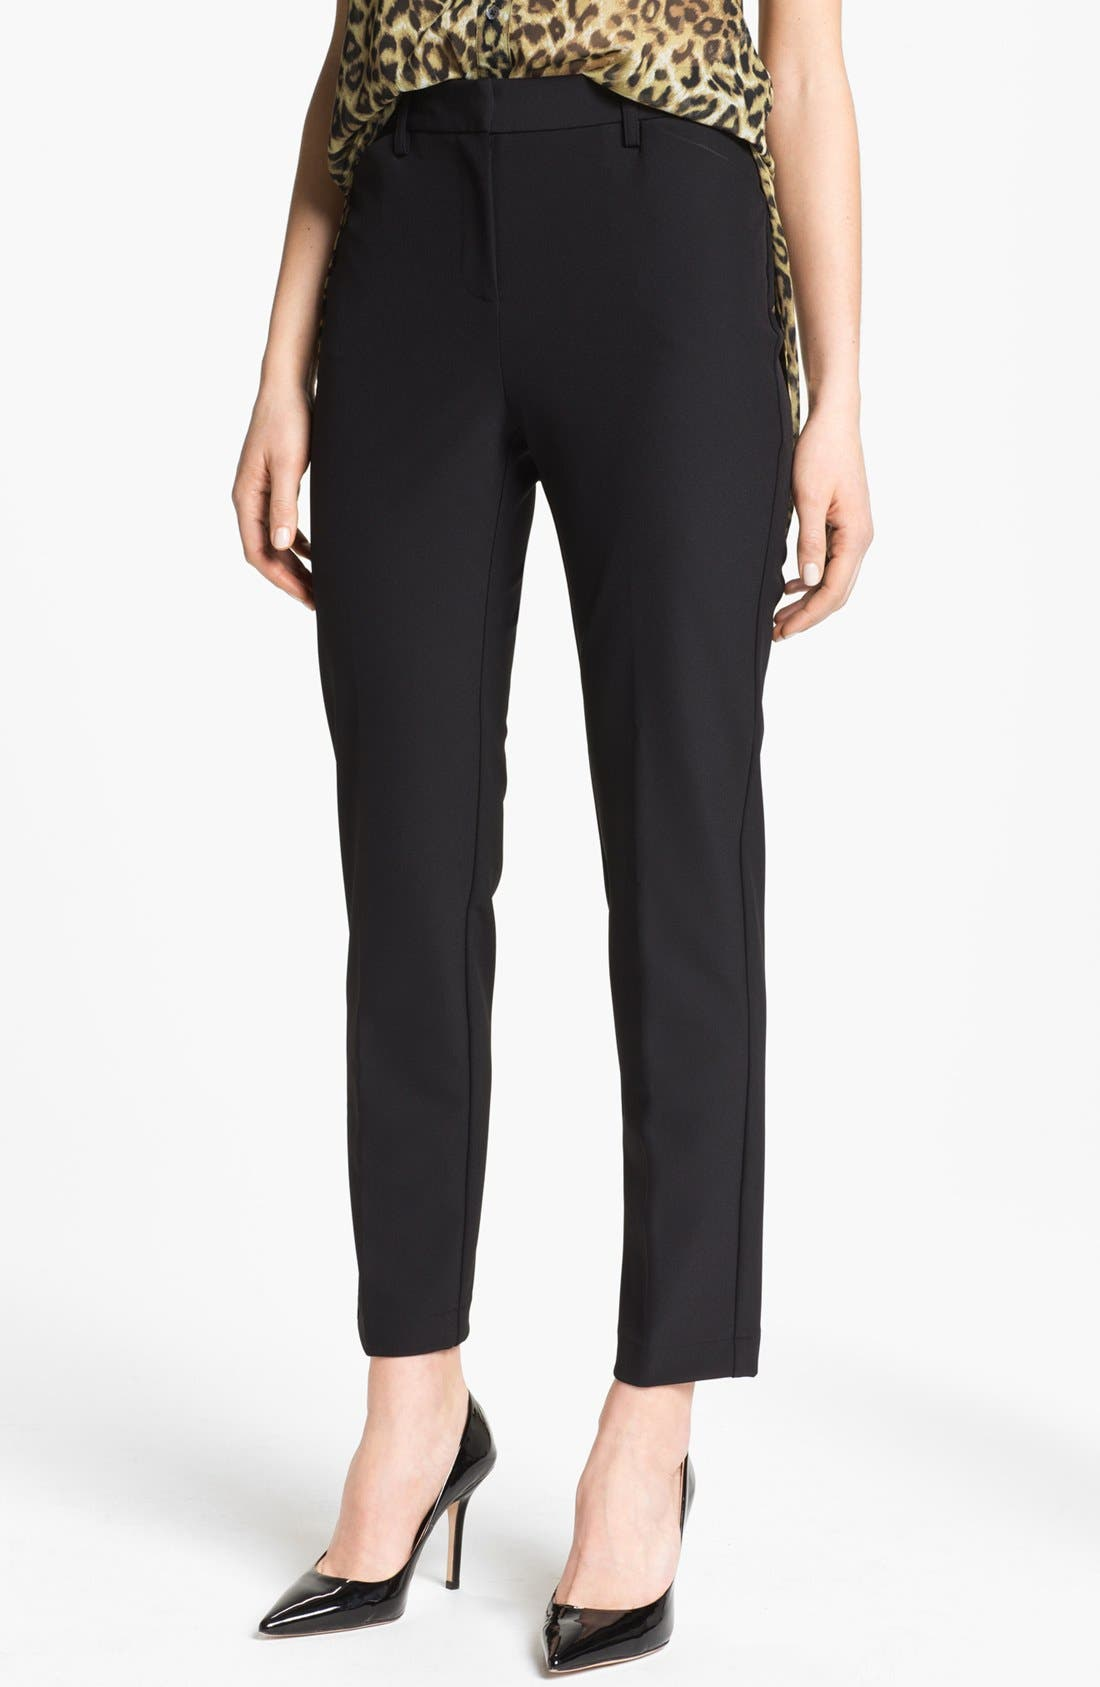 Alternate Image 1 Selected - Kenneth Cole New York 'Brielle' Pants